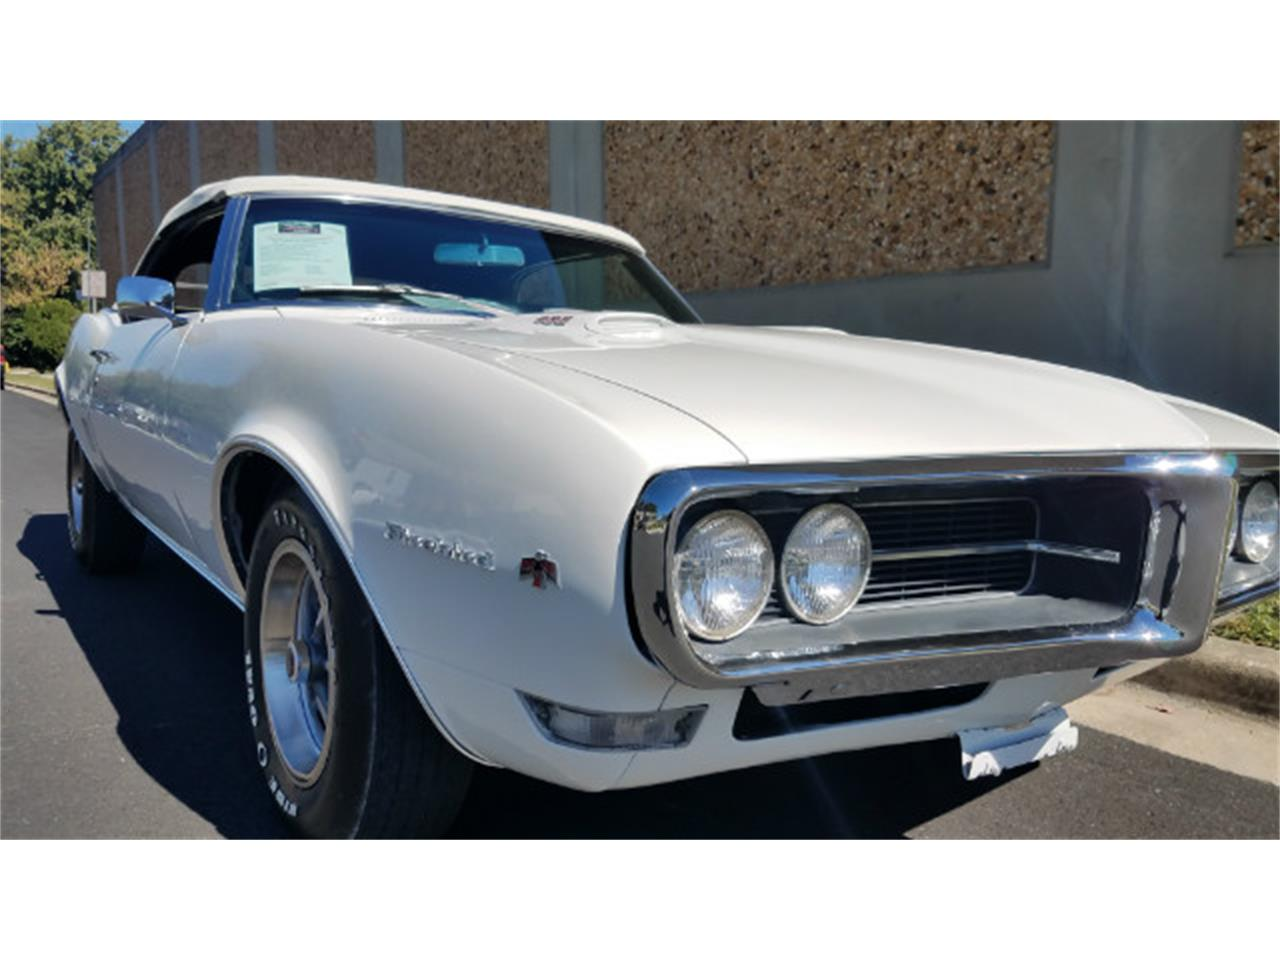 Large Picture of 1968 Pontiac Firebird located in Linthicum Maryland - $53,900.00 - MO8B